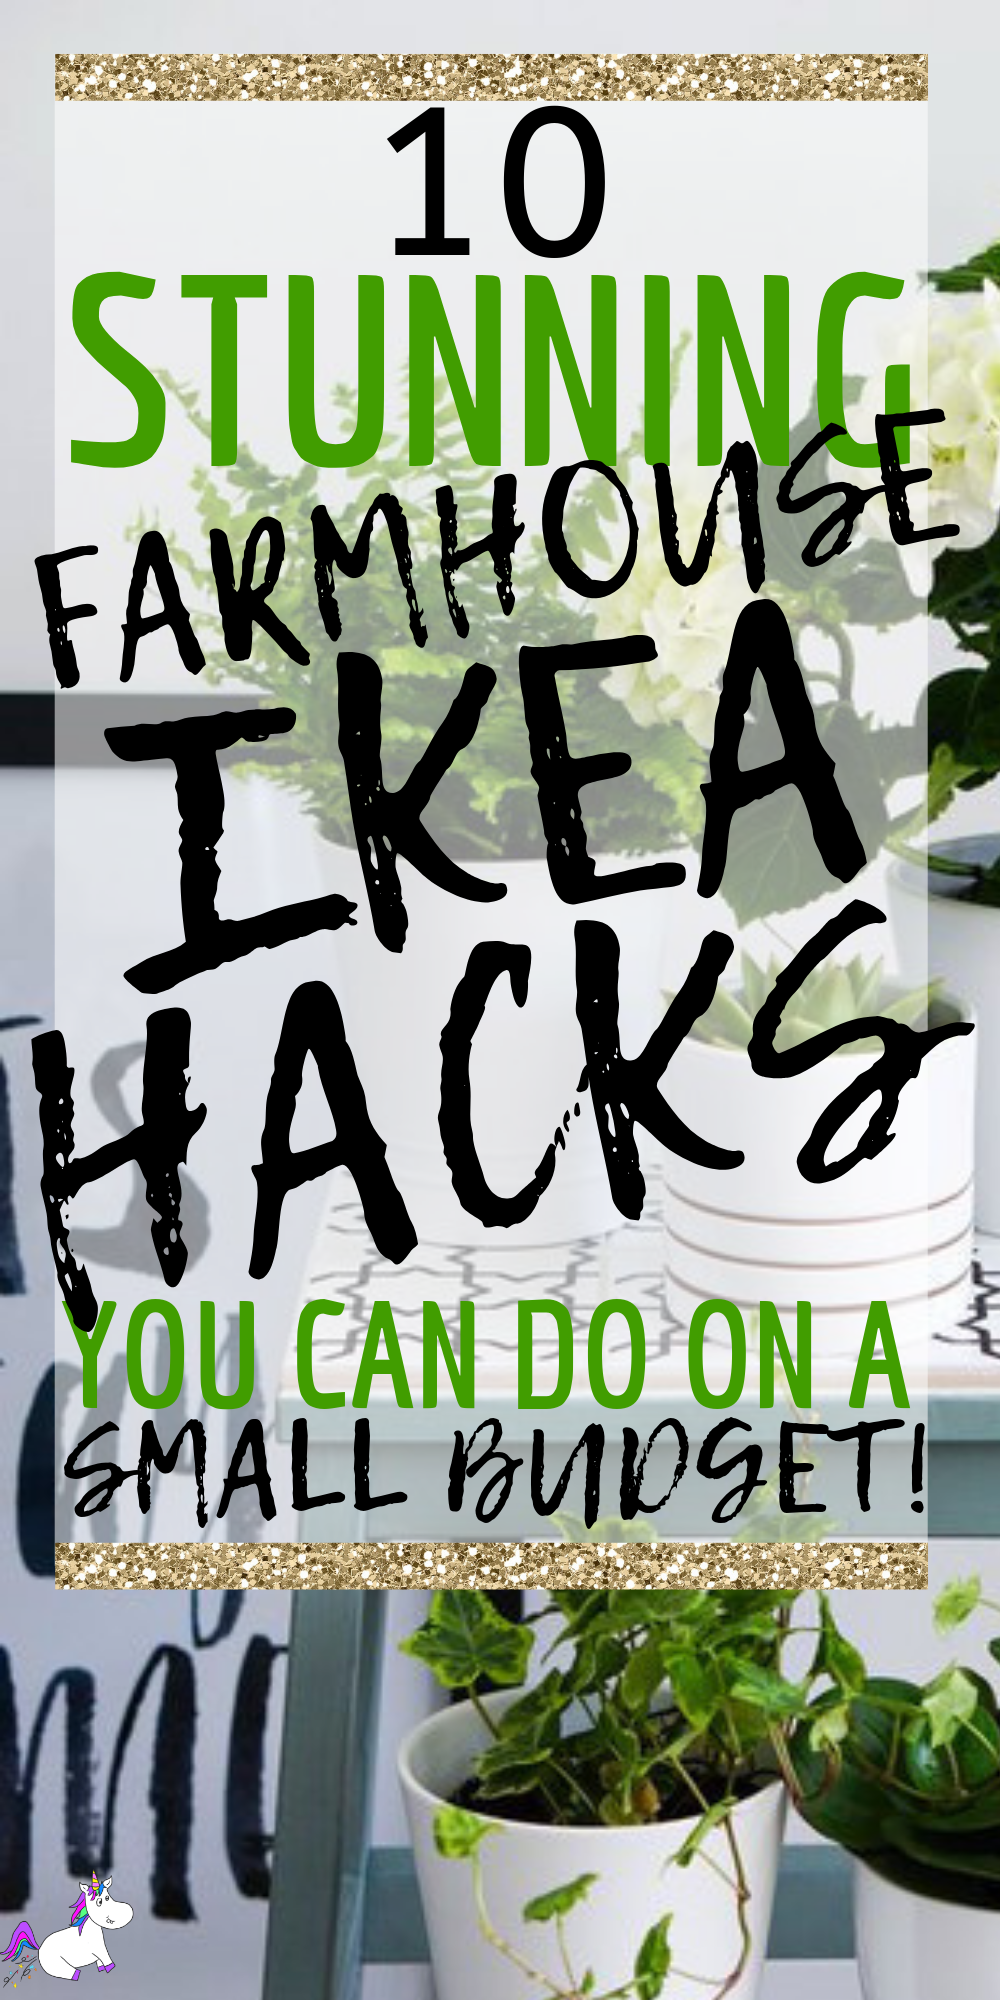 10 incredible Farmhouse Ikea Hacks For People Who Love Home Decor On A Budget! Best Ikea hacks for farmhouse style decor lovers| #ikeadecorideas #farmhousehomedecor #rusticstyledecor #cvreativediyprojects #bestikeahacks #farmhouse